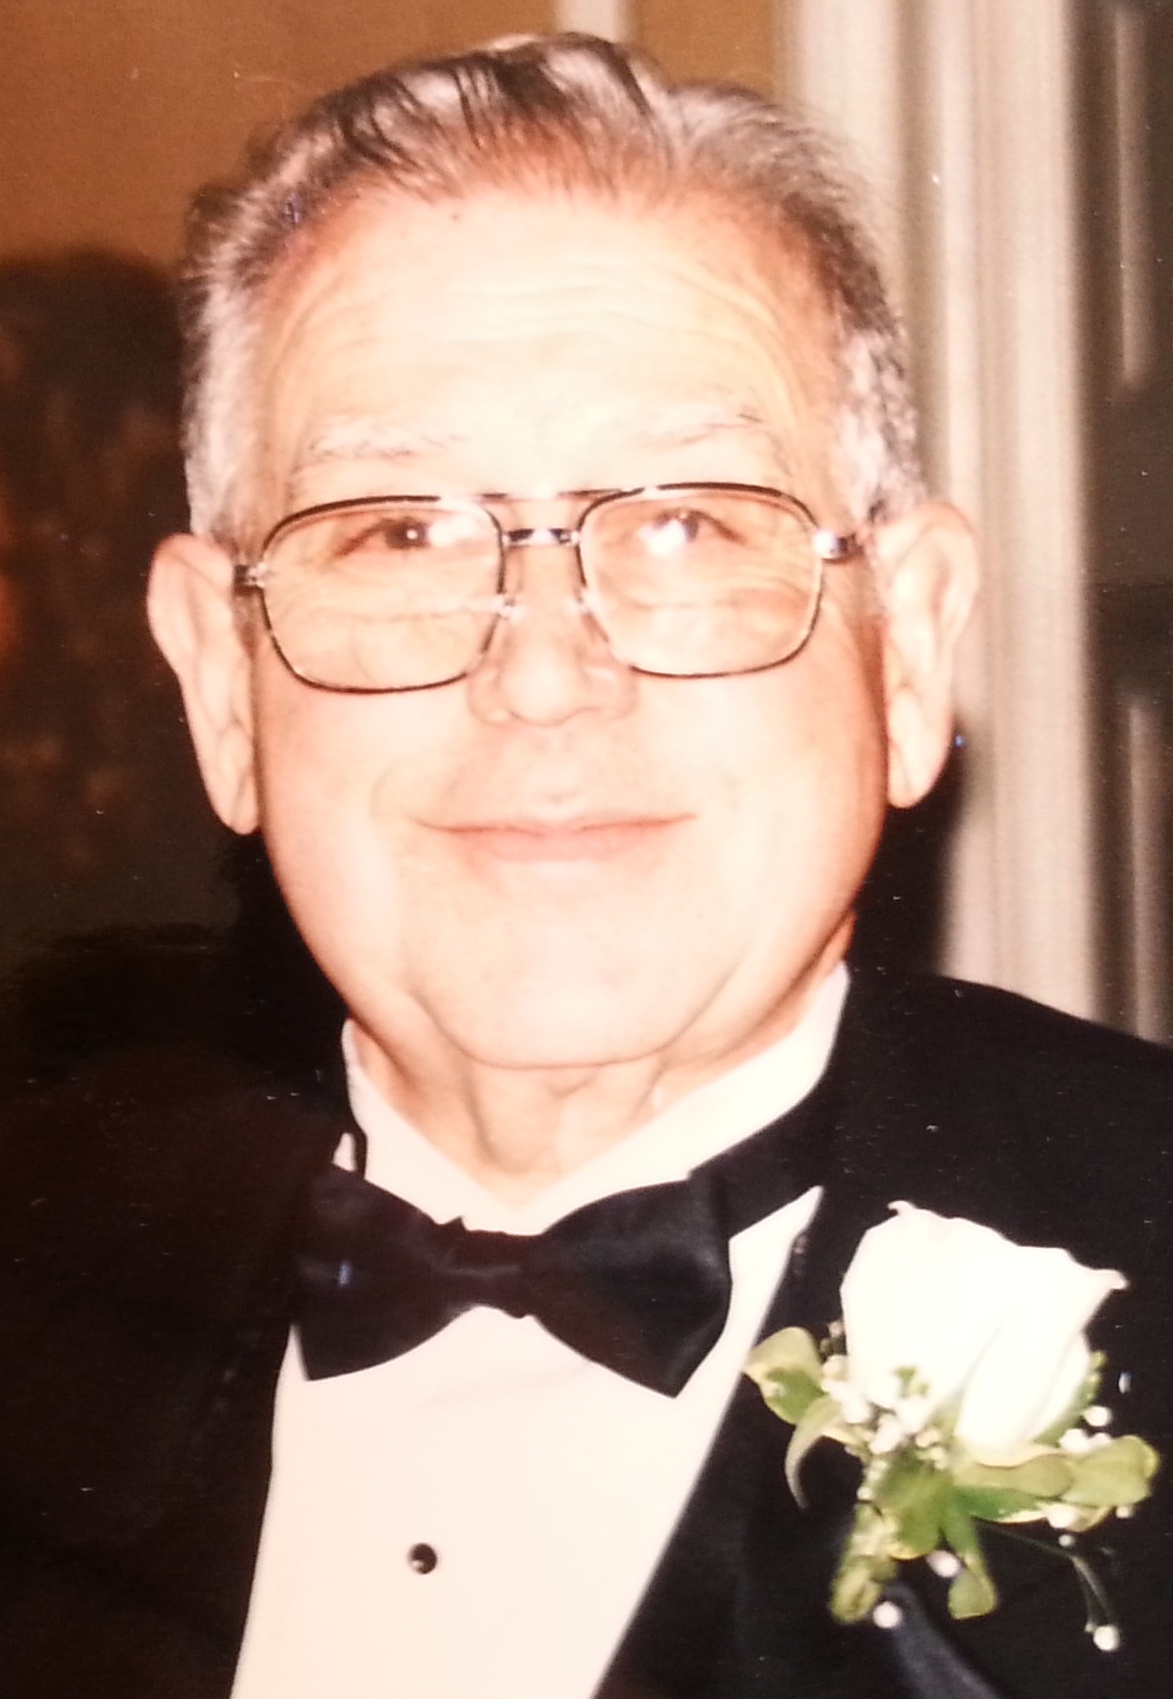 http://www.croswellfuneralhome.com/Pictures/agripinno%20Cardello%20pic%20cropped.jpg